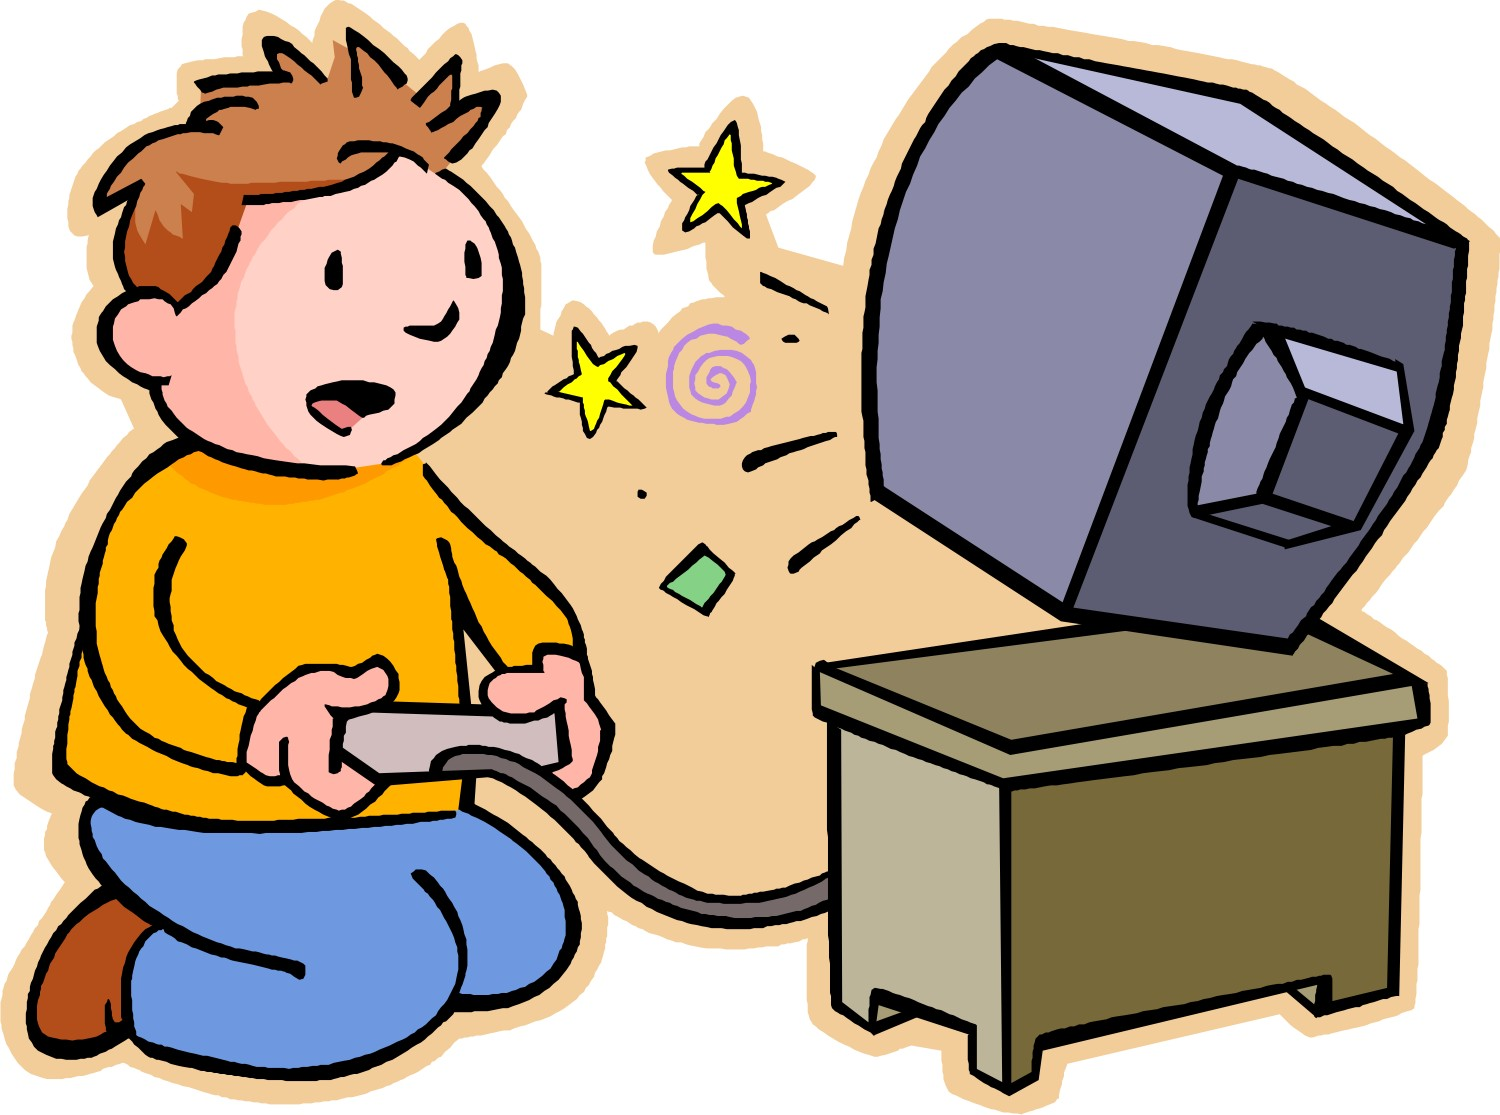 Playing a game clipart.